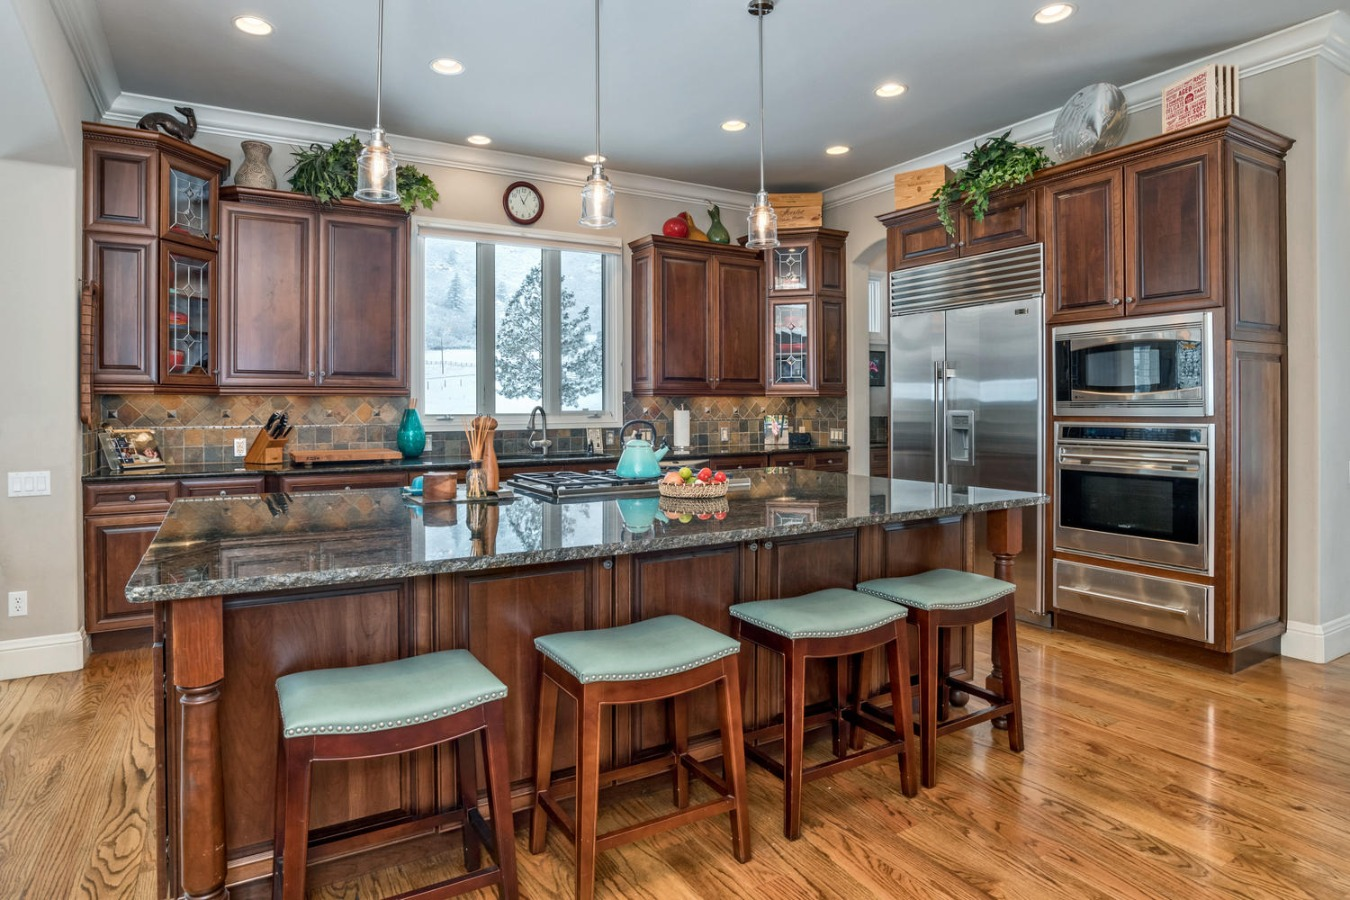 Stainless High-end Kitchen Appliances